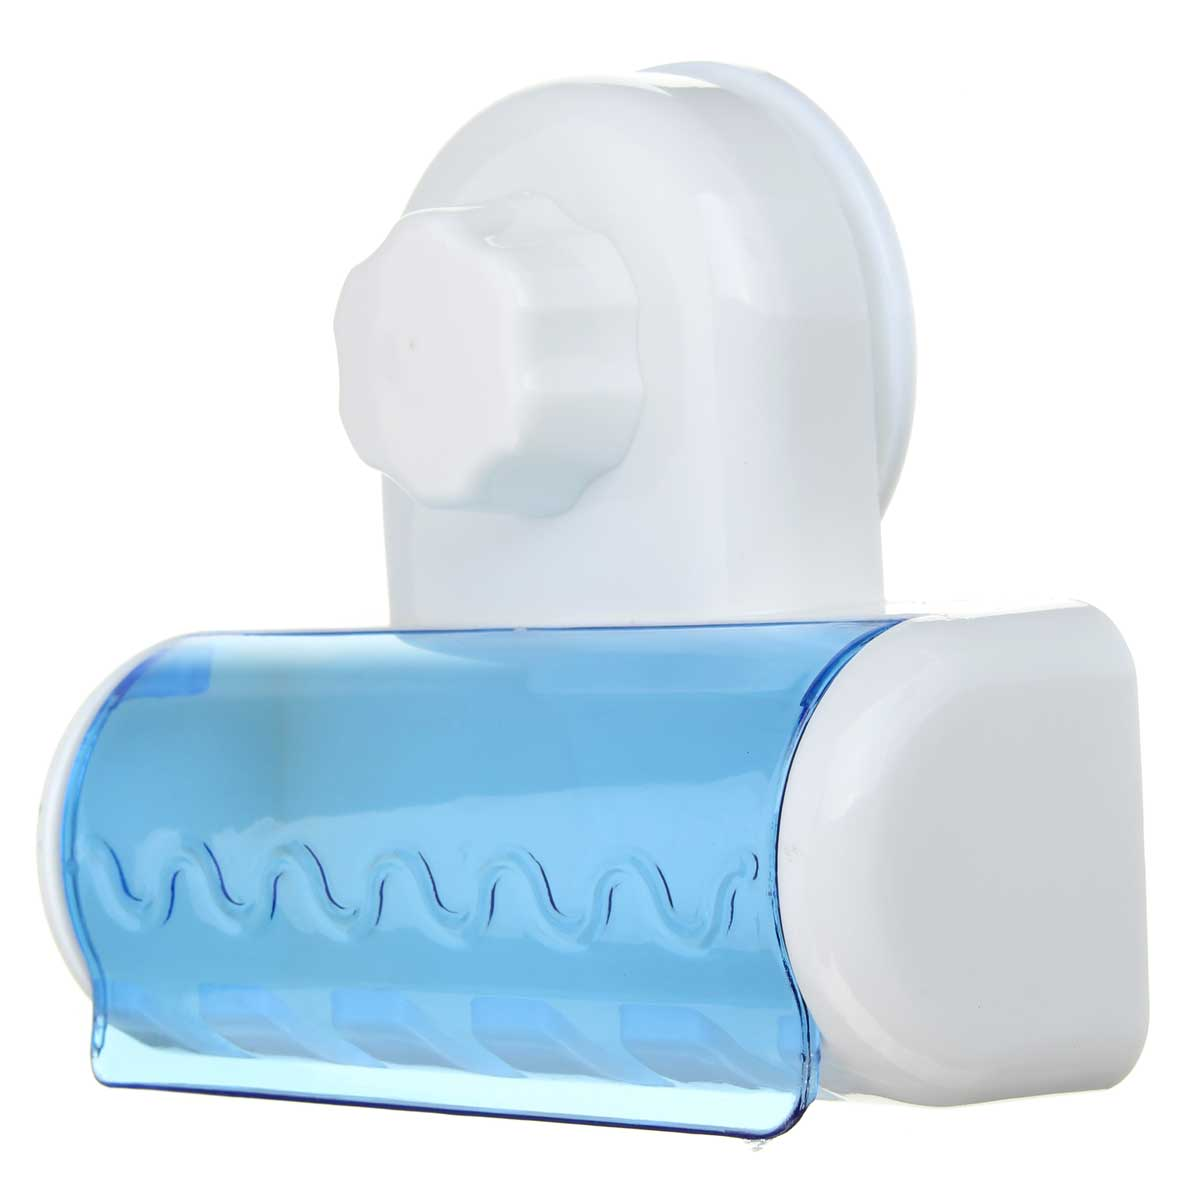 Plastic bathroom sets - 5 Hook Sucker Hanging Toothbrush Clear Strong Wall Fixed Practical Plastic Tooth Brush Holder Home Bathroom